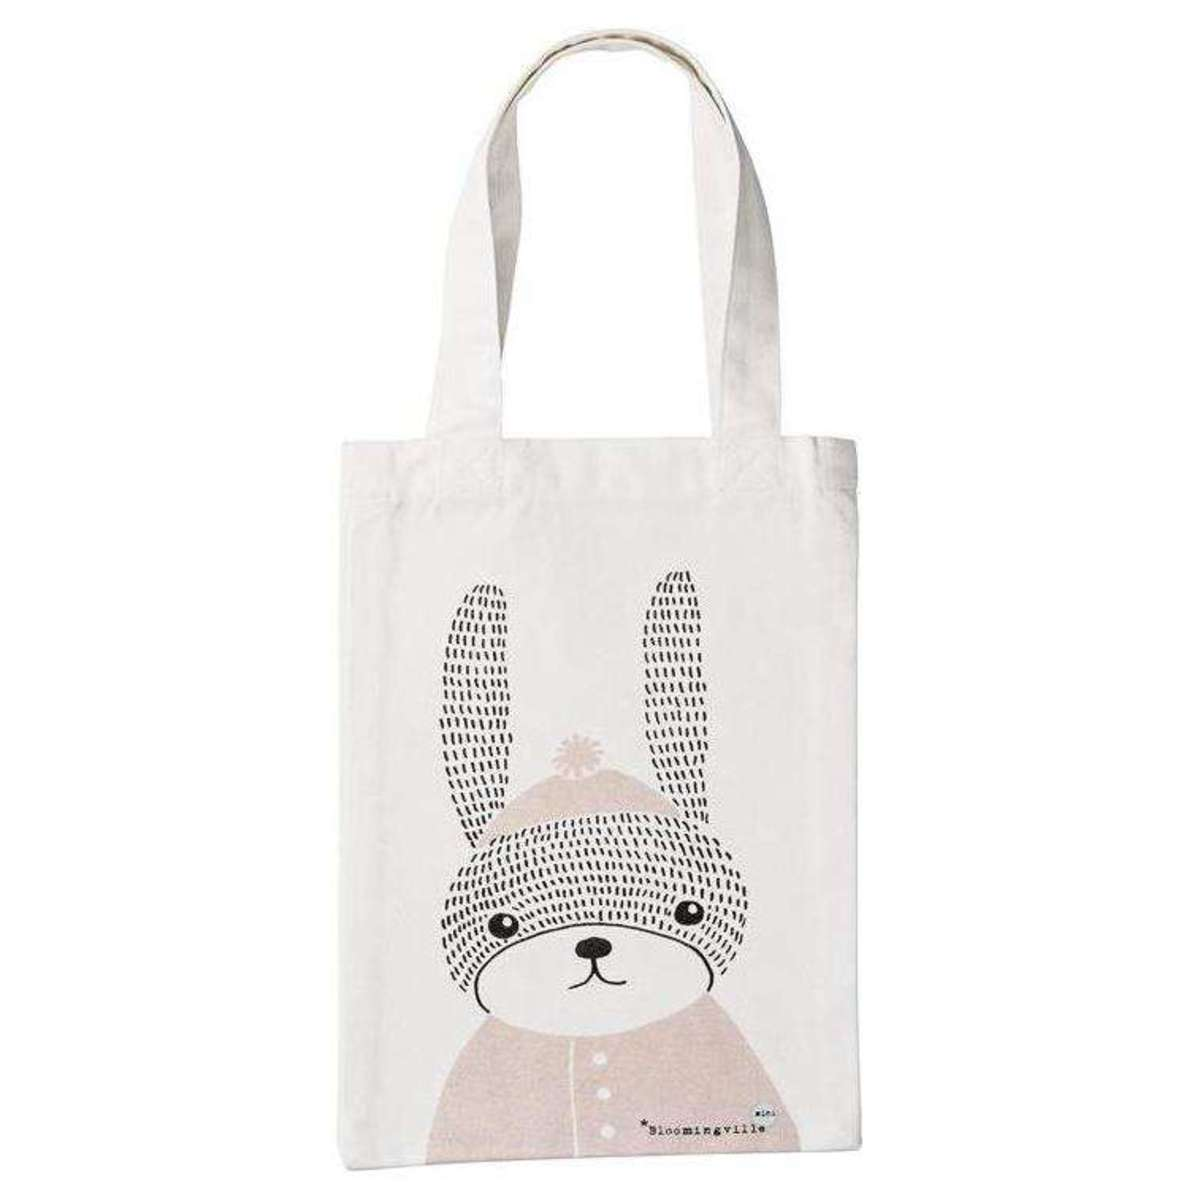 tote bag enfant lapin 95600028 achat vente bagagerie enfant sur. Black Bedroom Furniture Sets. Home Design Ideas